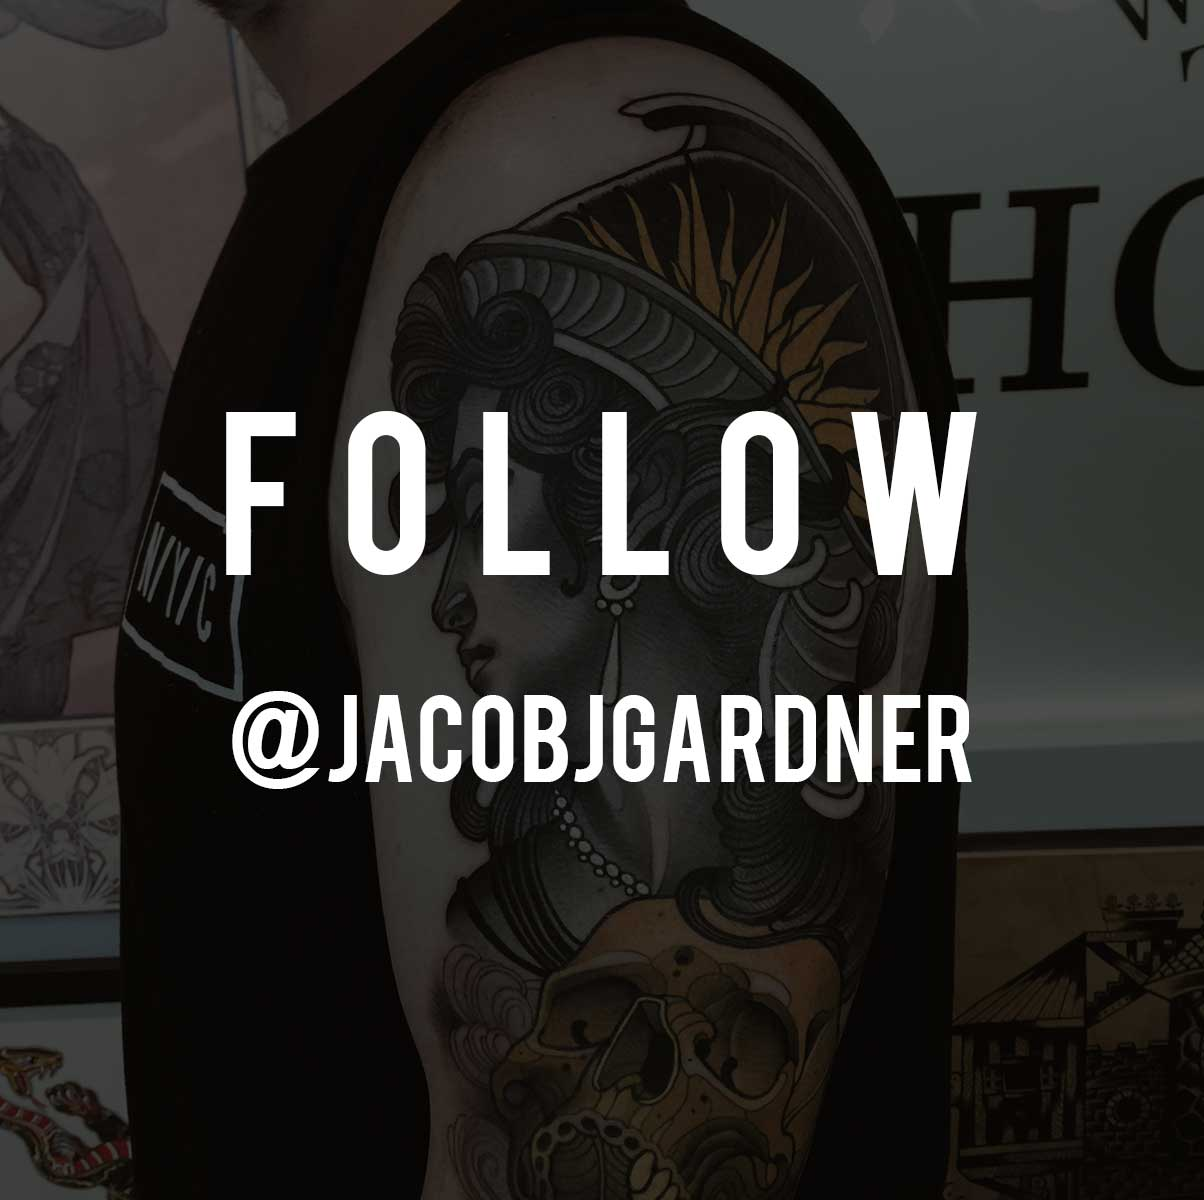 FOLLOW - JACOB GARDNER